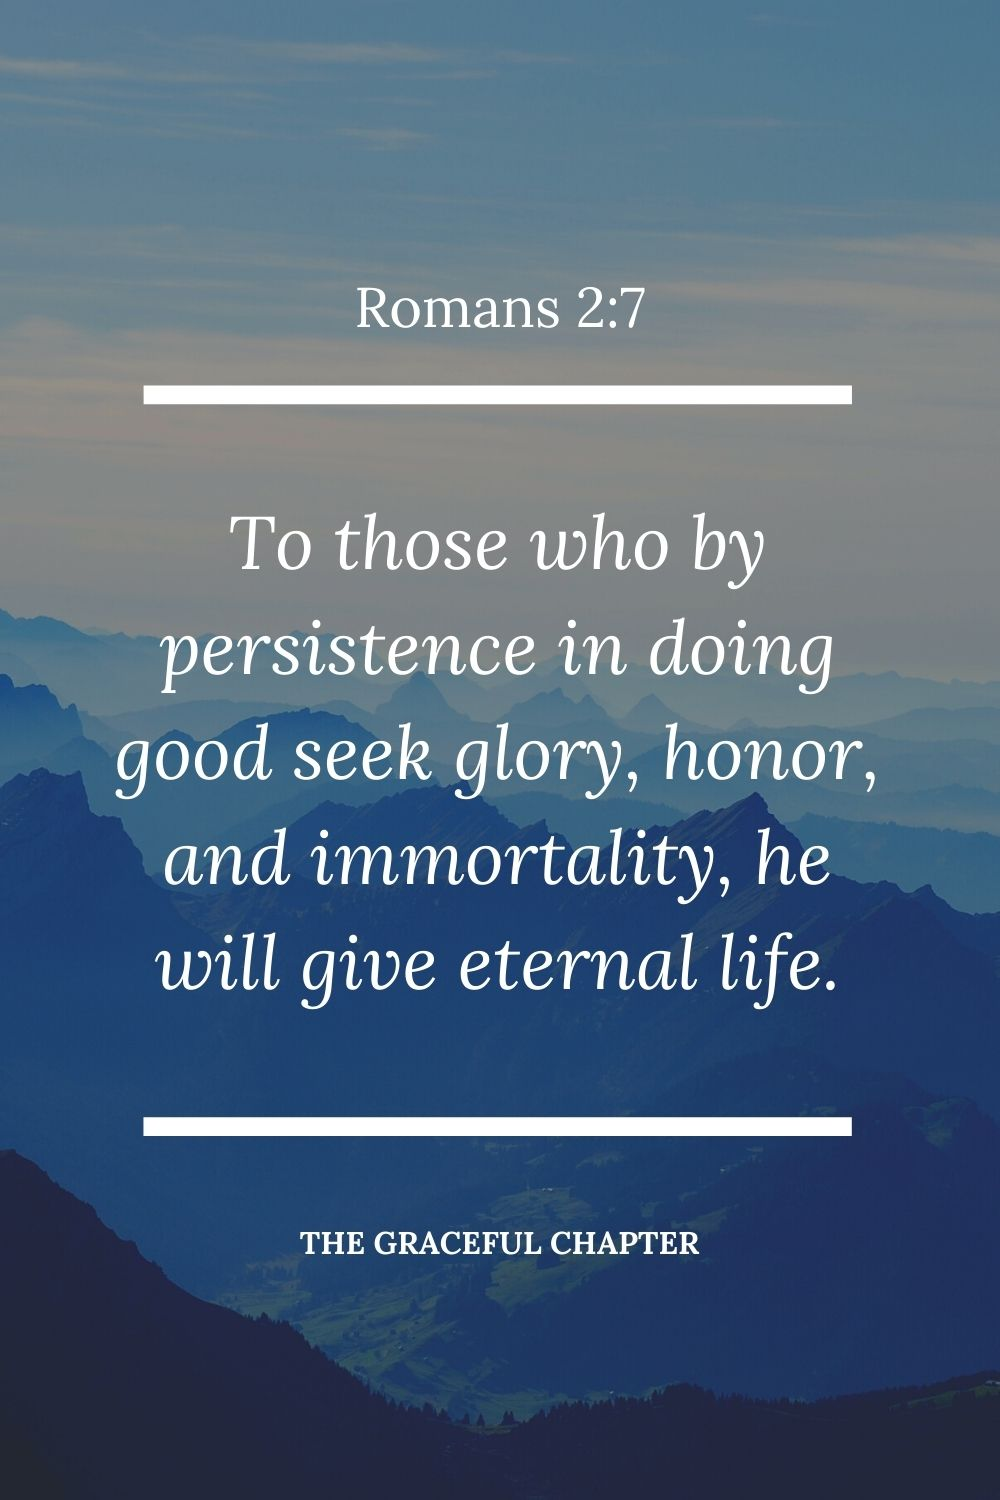 To those who by persistence in doing good seek glory, honor, and immortality, he will give eternal life. Romans 2:7